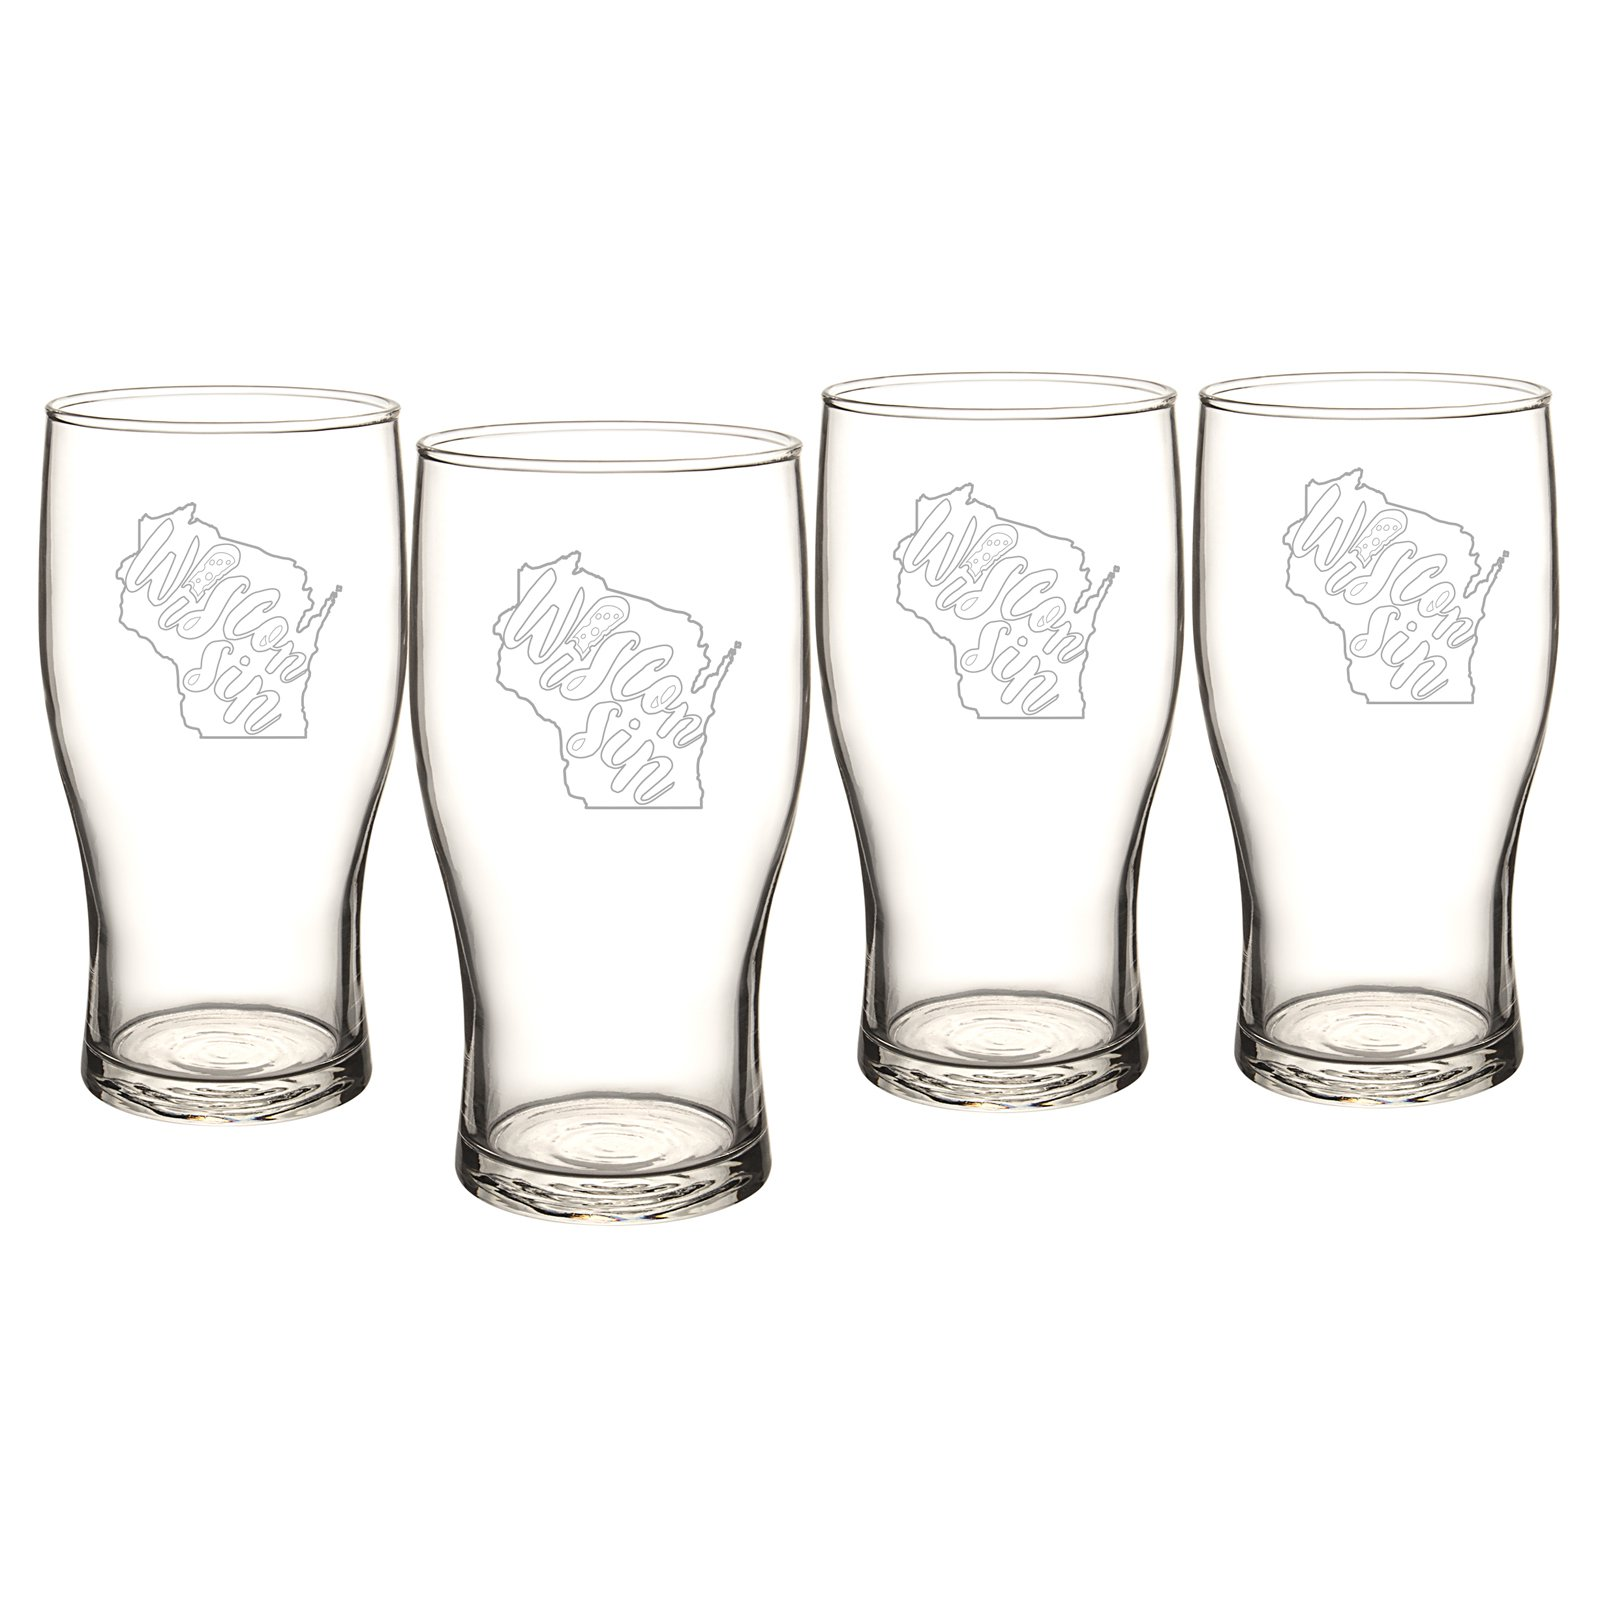 Cathys Concepts My State Beer Pilsner Glasses